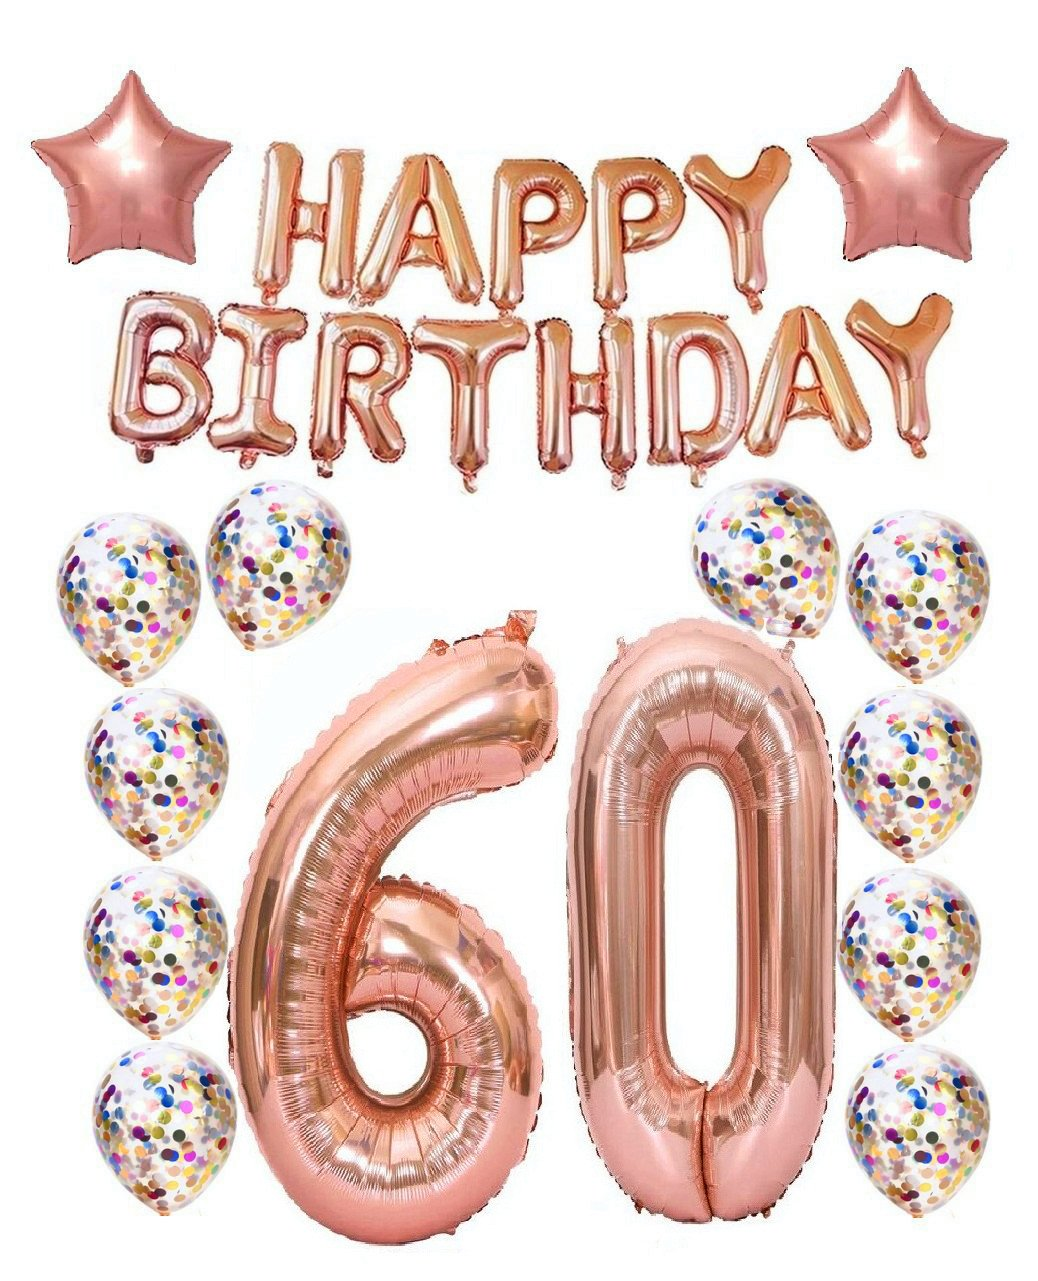 60th Birthday Decorations Party Supplies, 60th Birthday Balloons Rose Gold, Rose Gold Hang Happy Birthday Alphabet Balloons Banner, Gold Confetti Balloons, 60th Birthday for Women Mity Rain